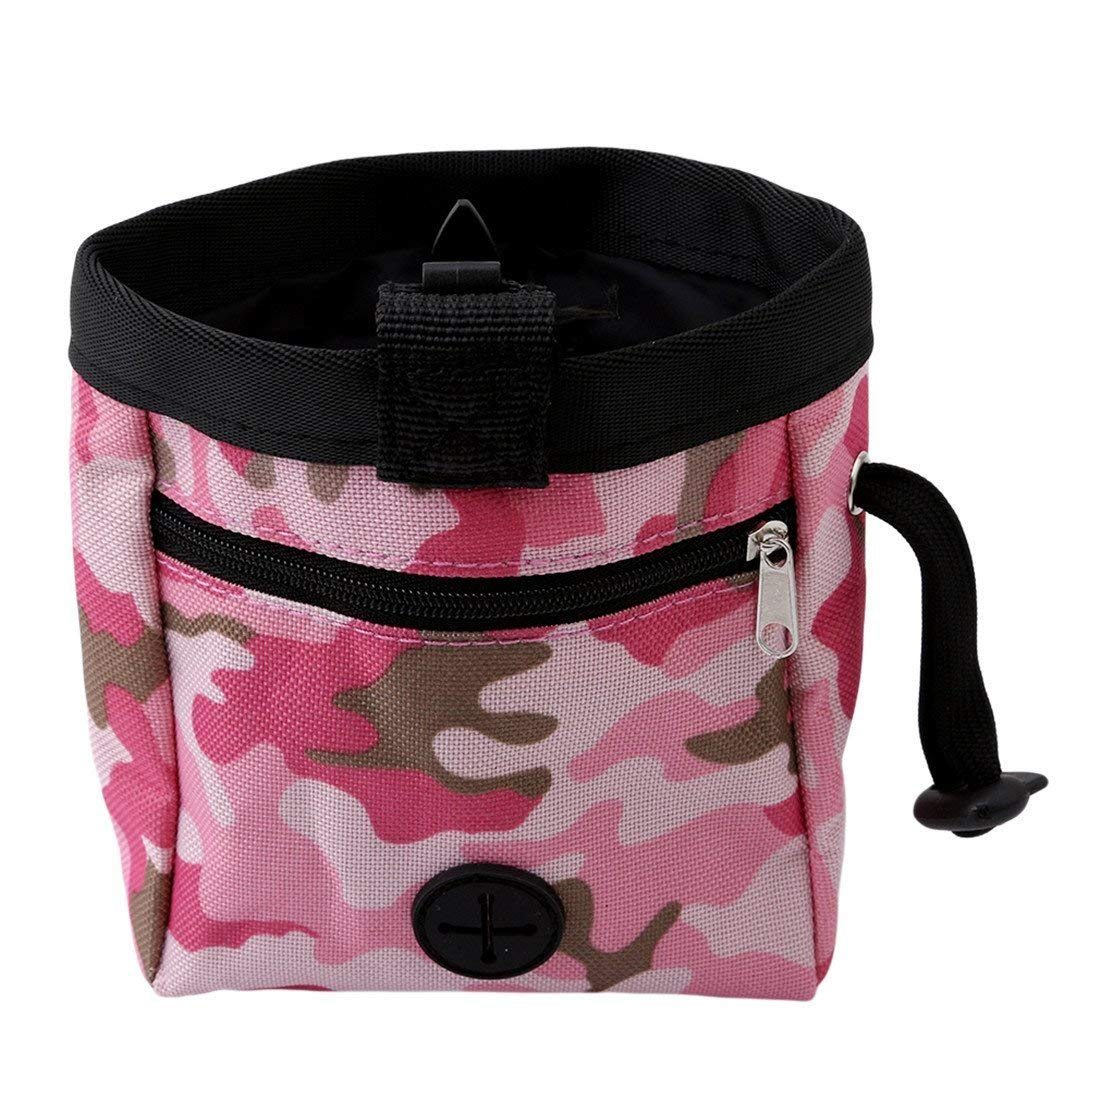 Jesica Pet Dog Portable Snack Food Bag Training Pouch - Pink